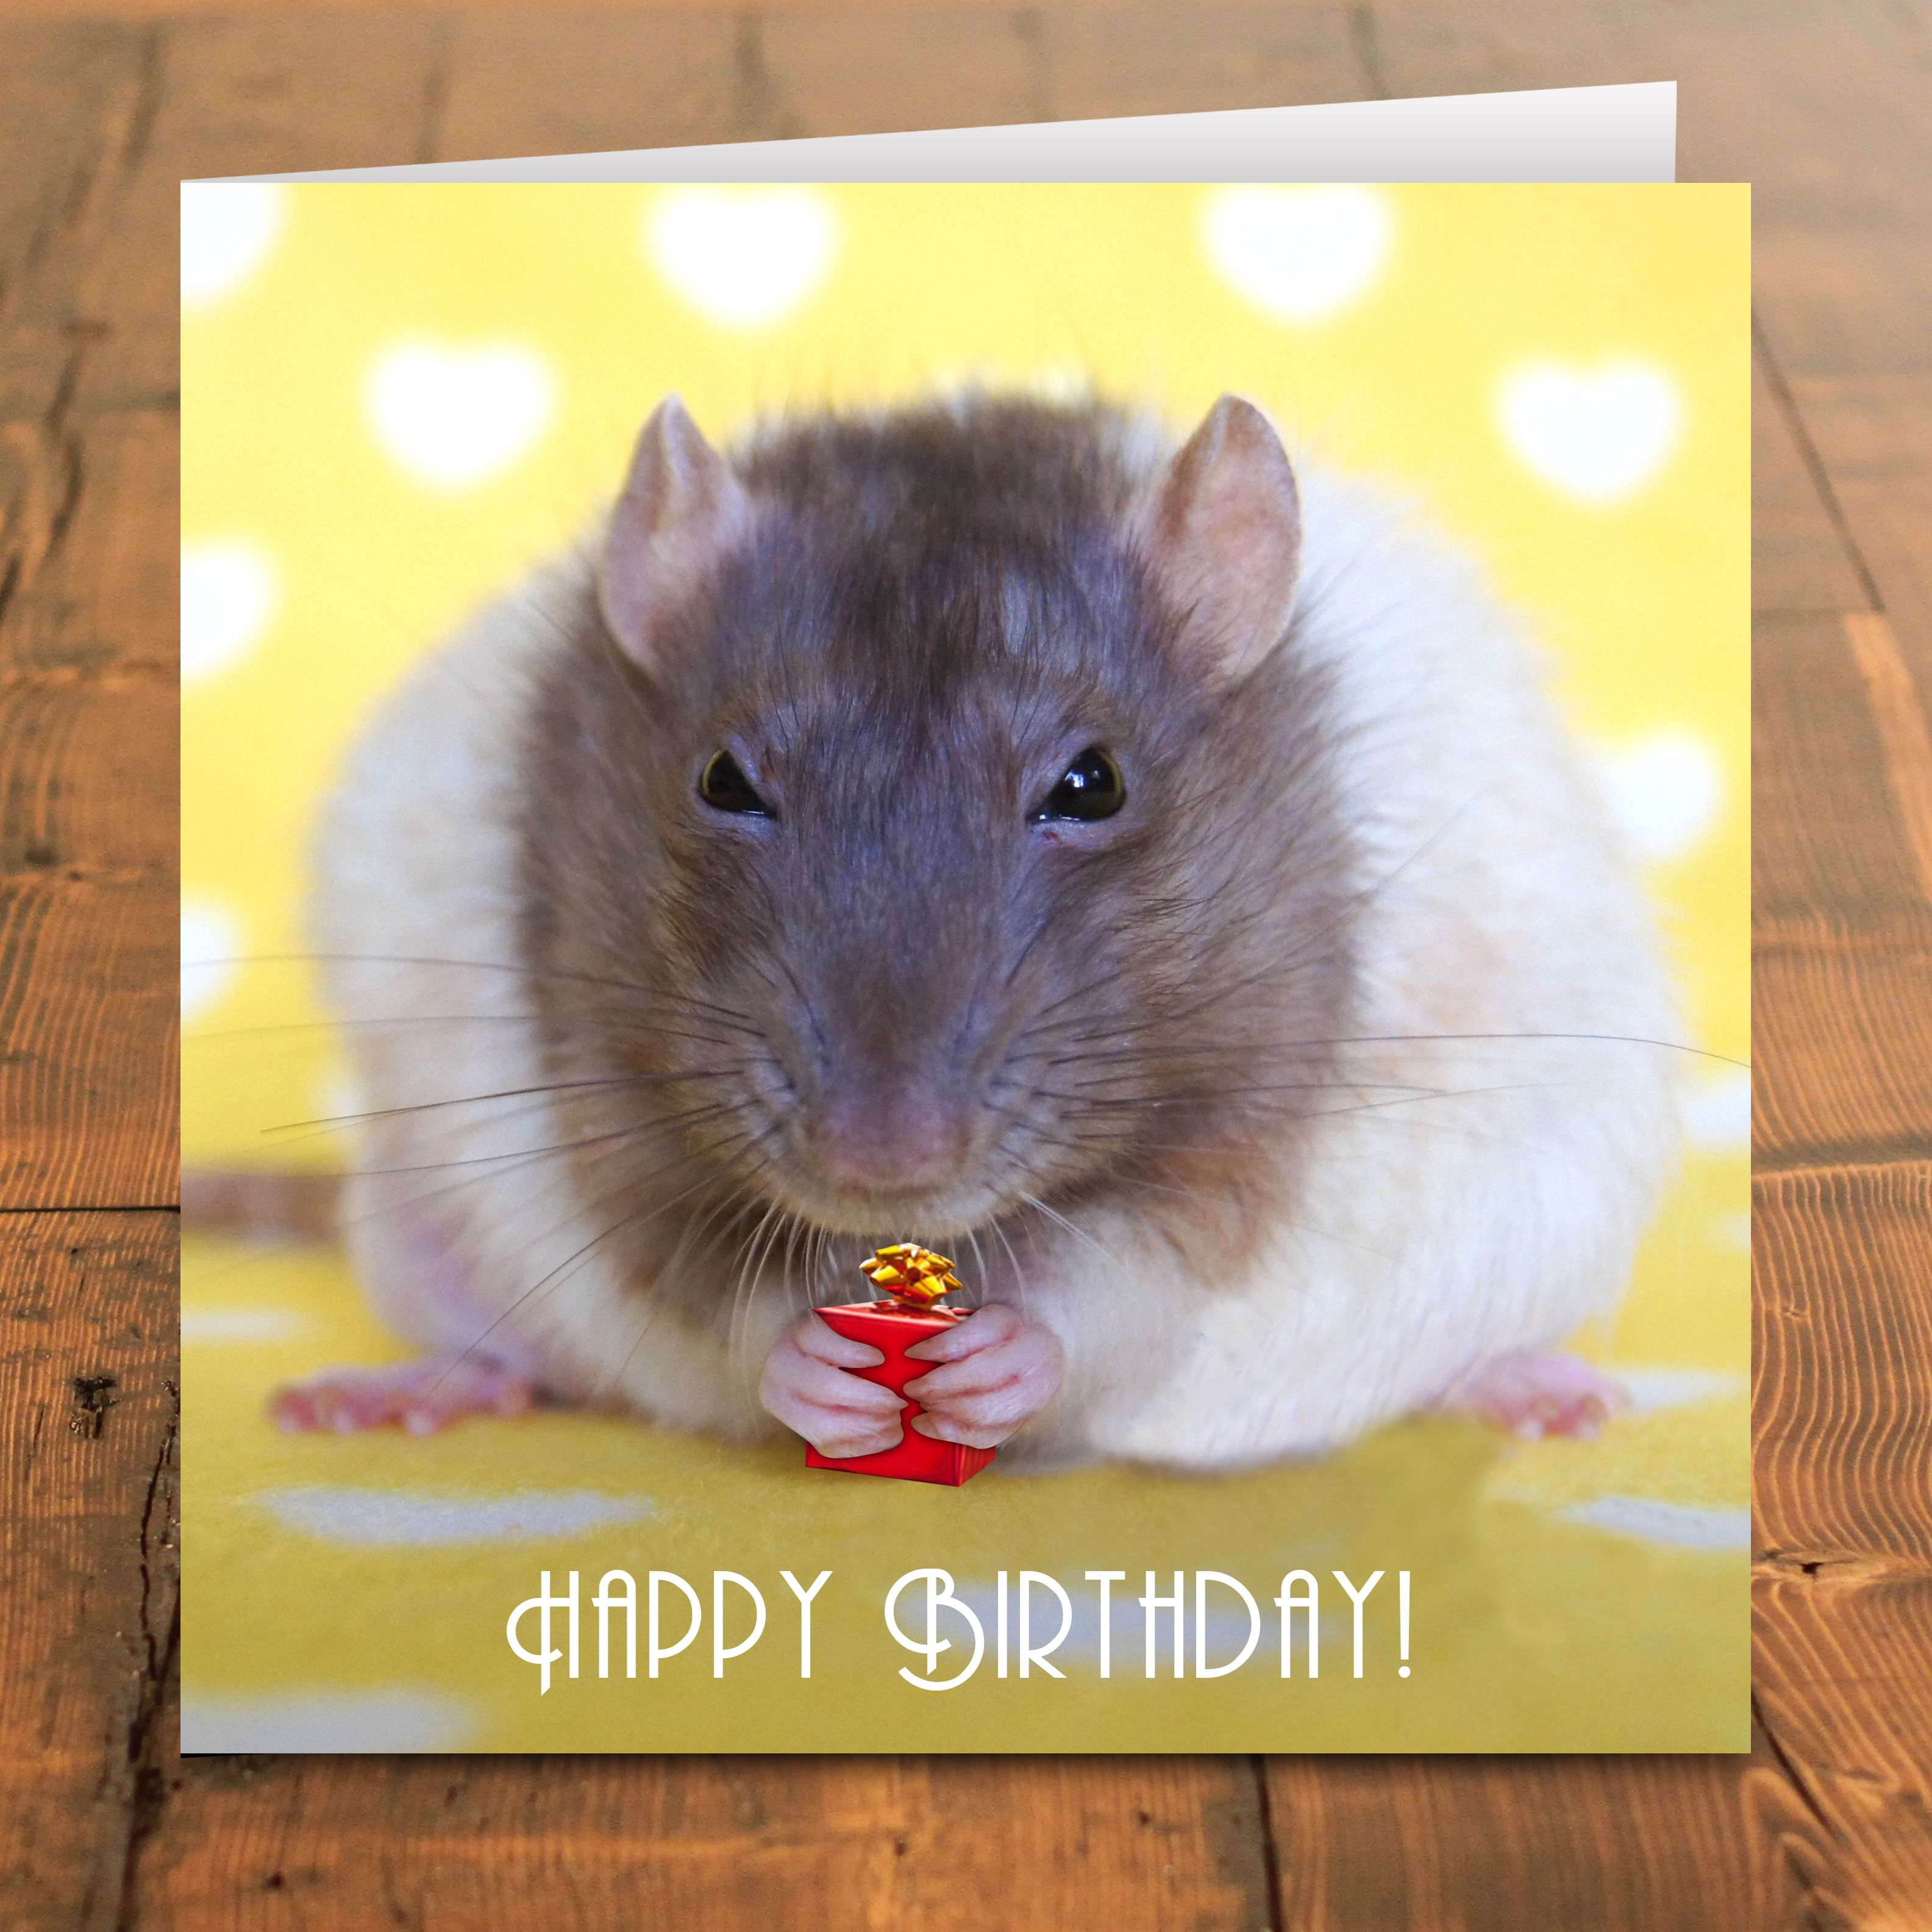 Beautiful happy birthday card for facebook images eccleshallfc happy birthday card 2 50 rat lovers greetings cards kristyandbryce Image collections